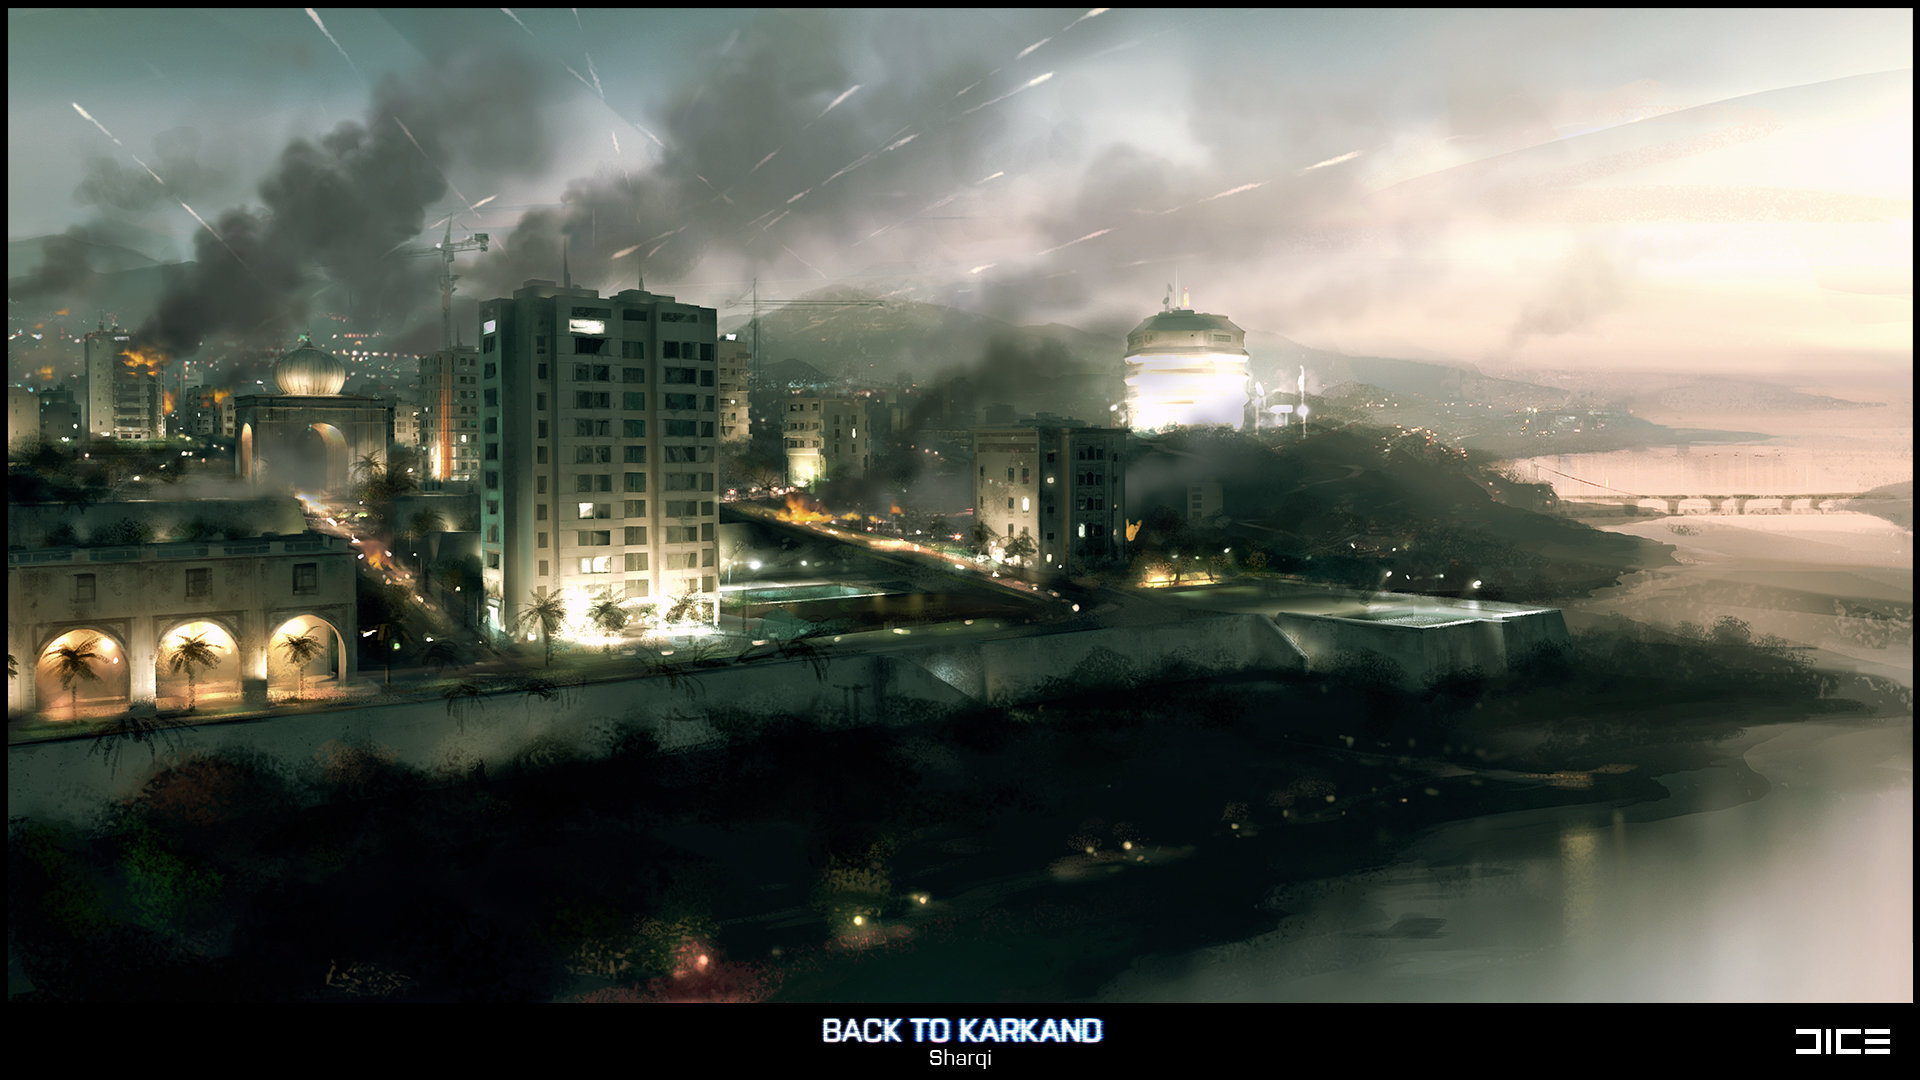 Battlefield 3: Back to Karkand (Sharqi, Concept)